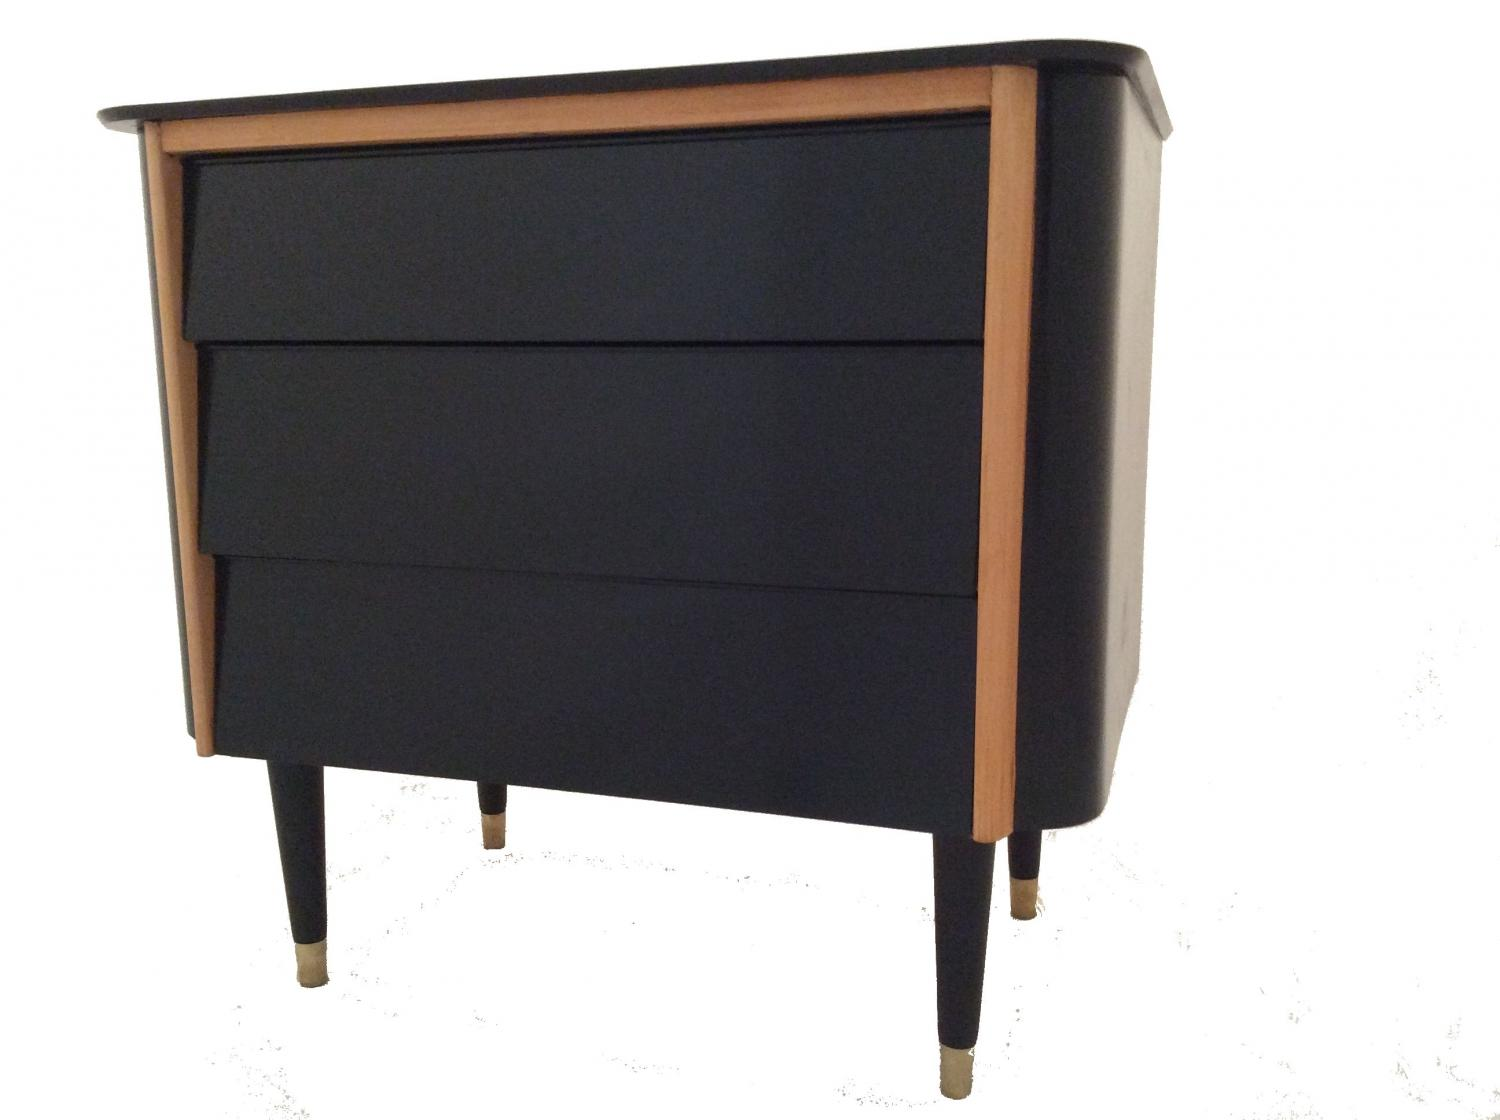 Shiny Black Retro Chest of Drawers